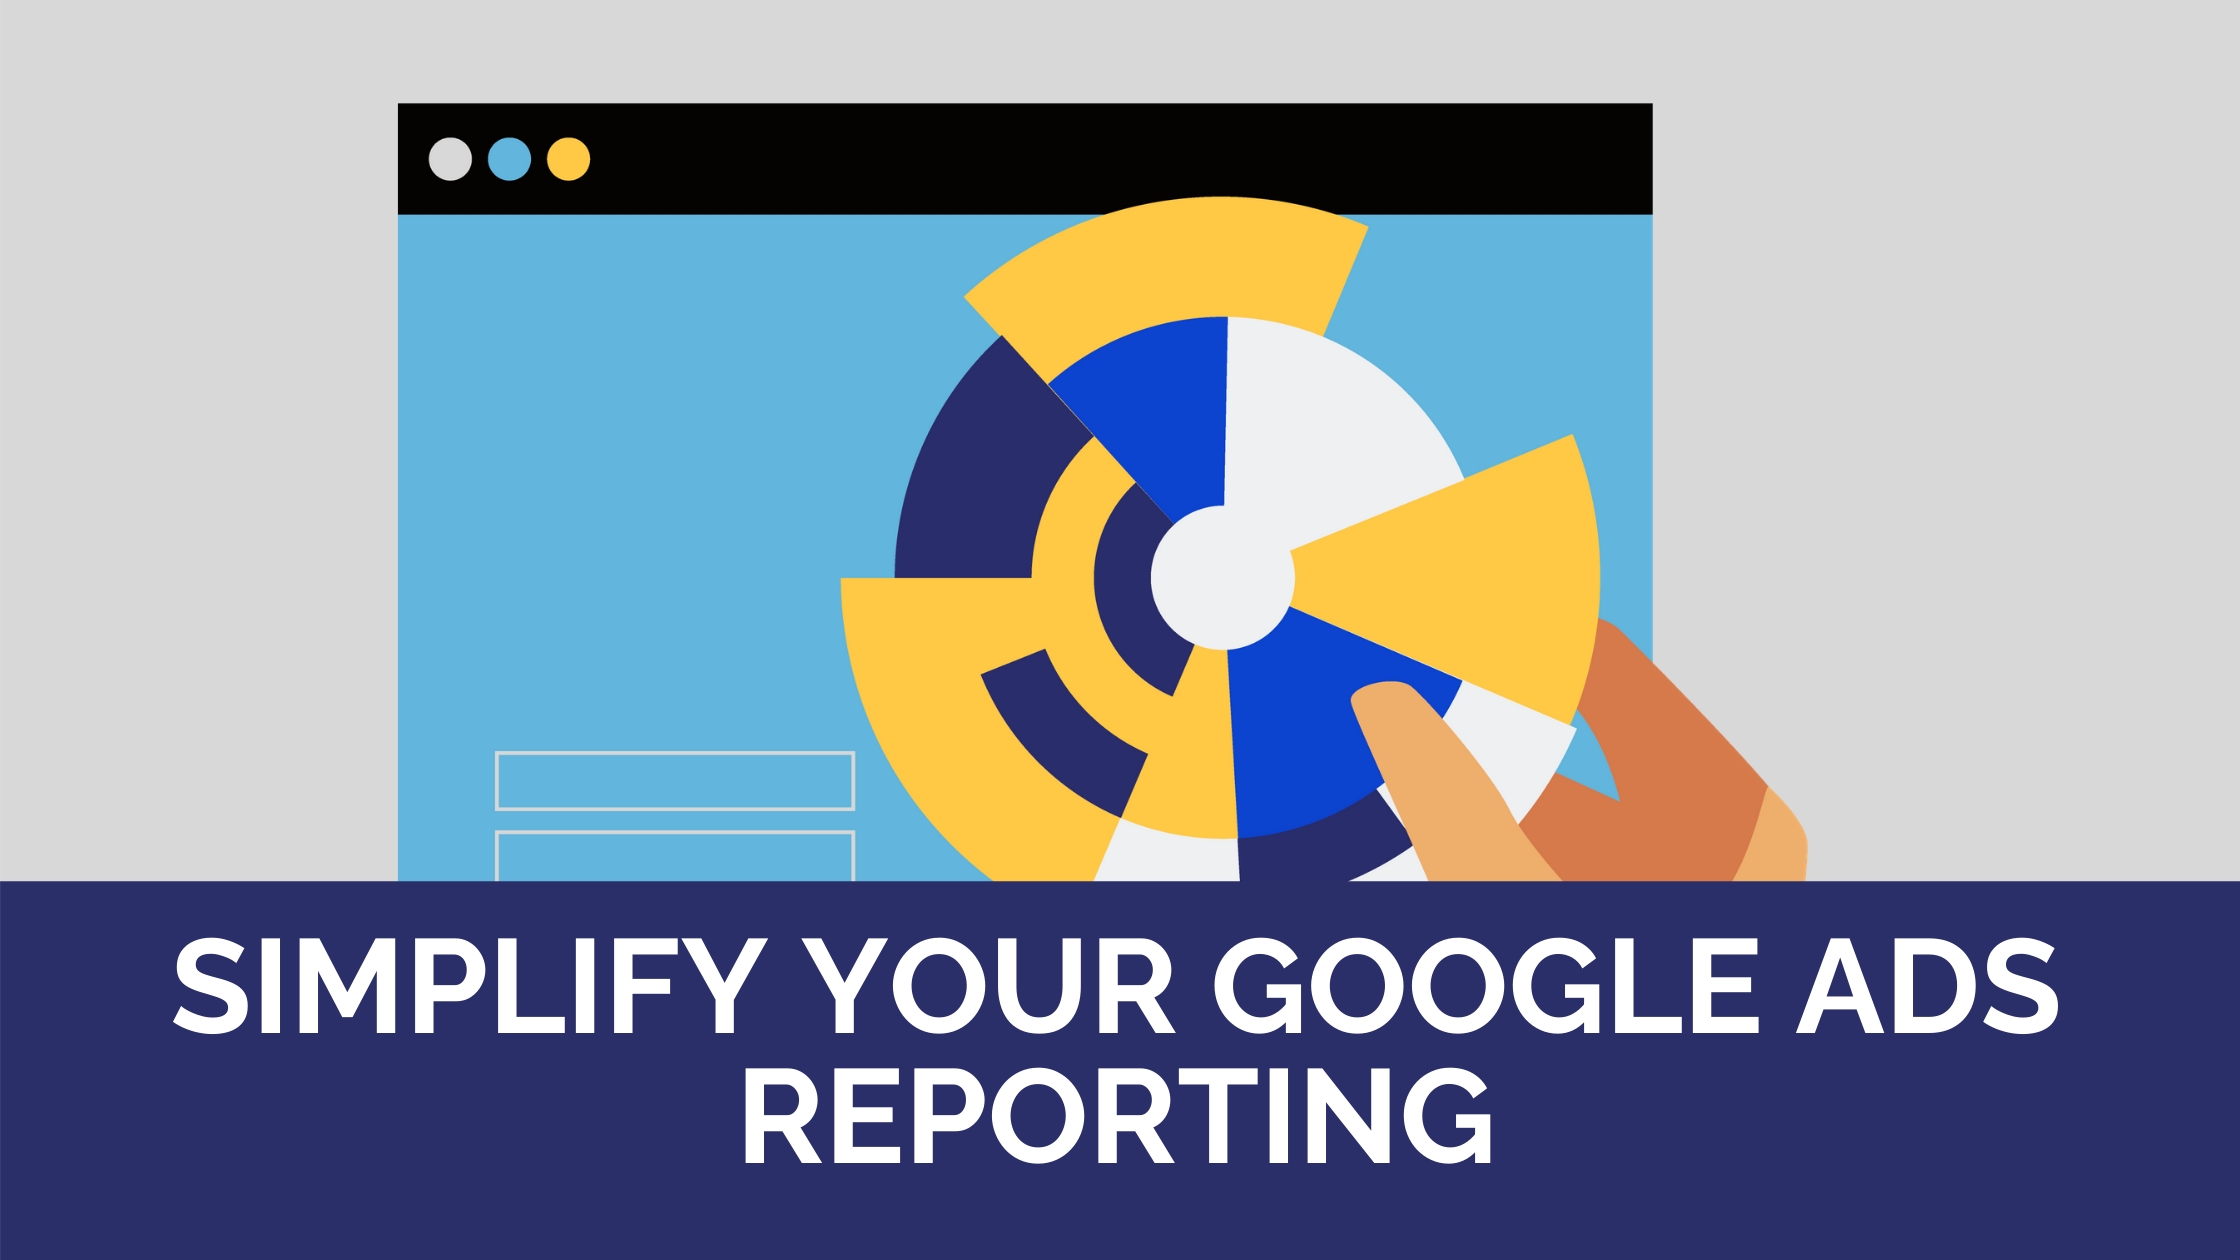 Simplify Your Google Ads Reporting